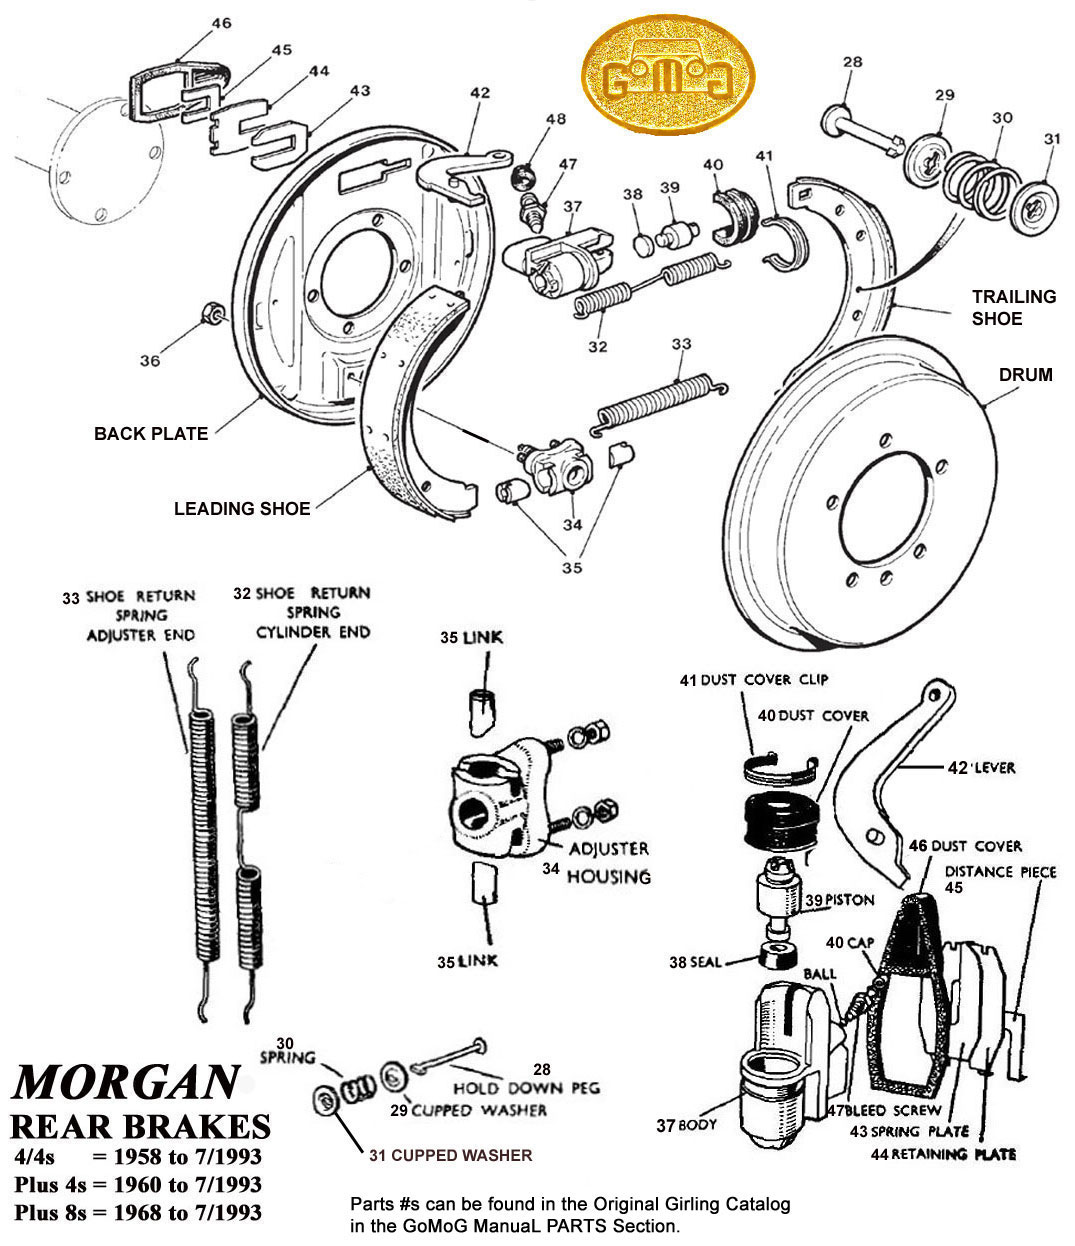 Maxxforce 13 Engine Belt Diagram